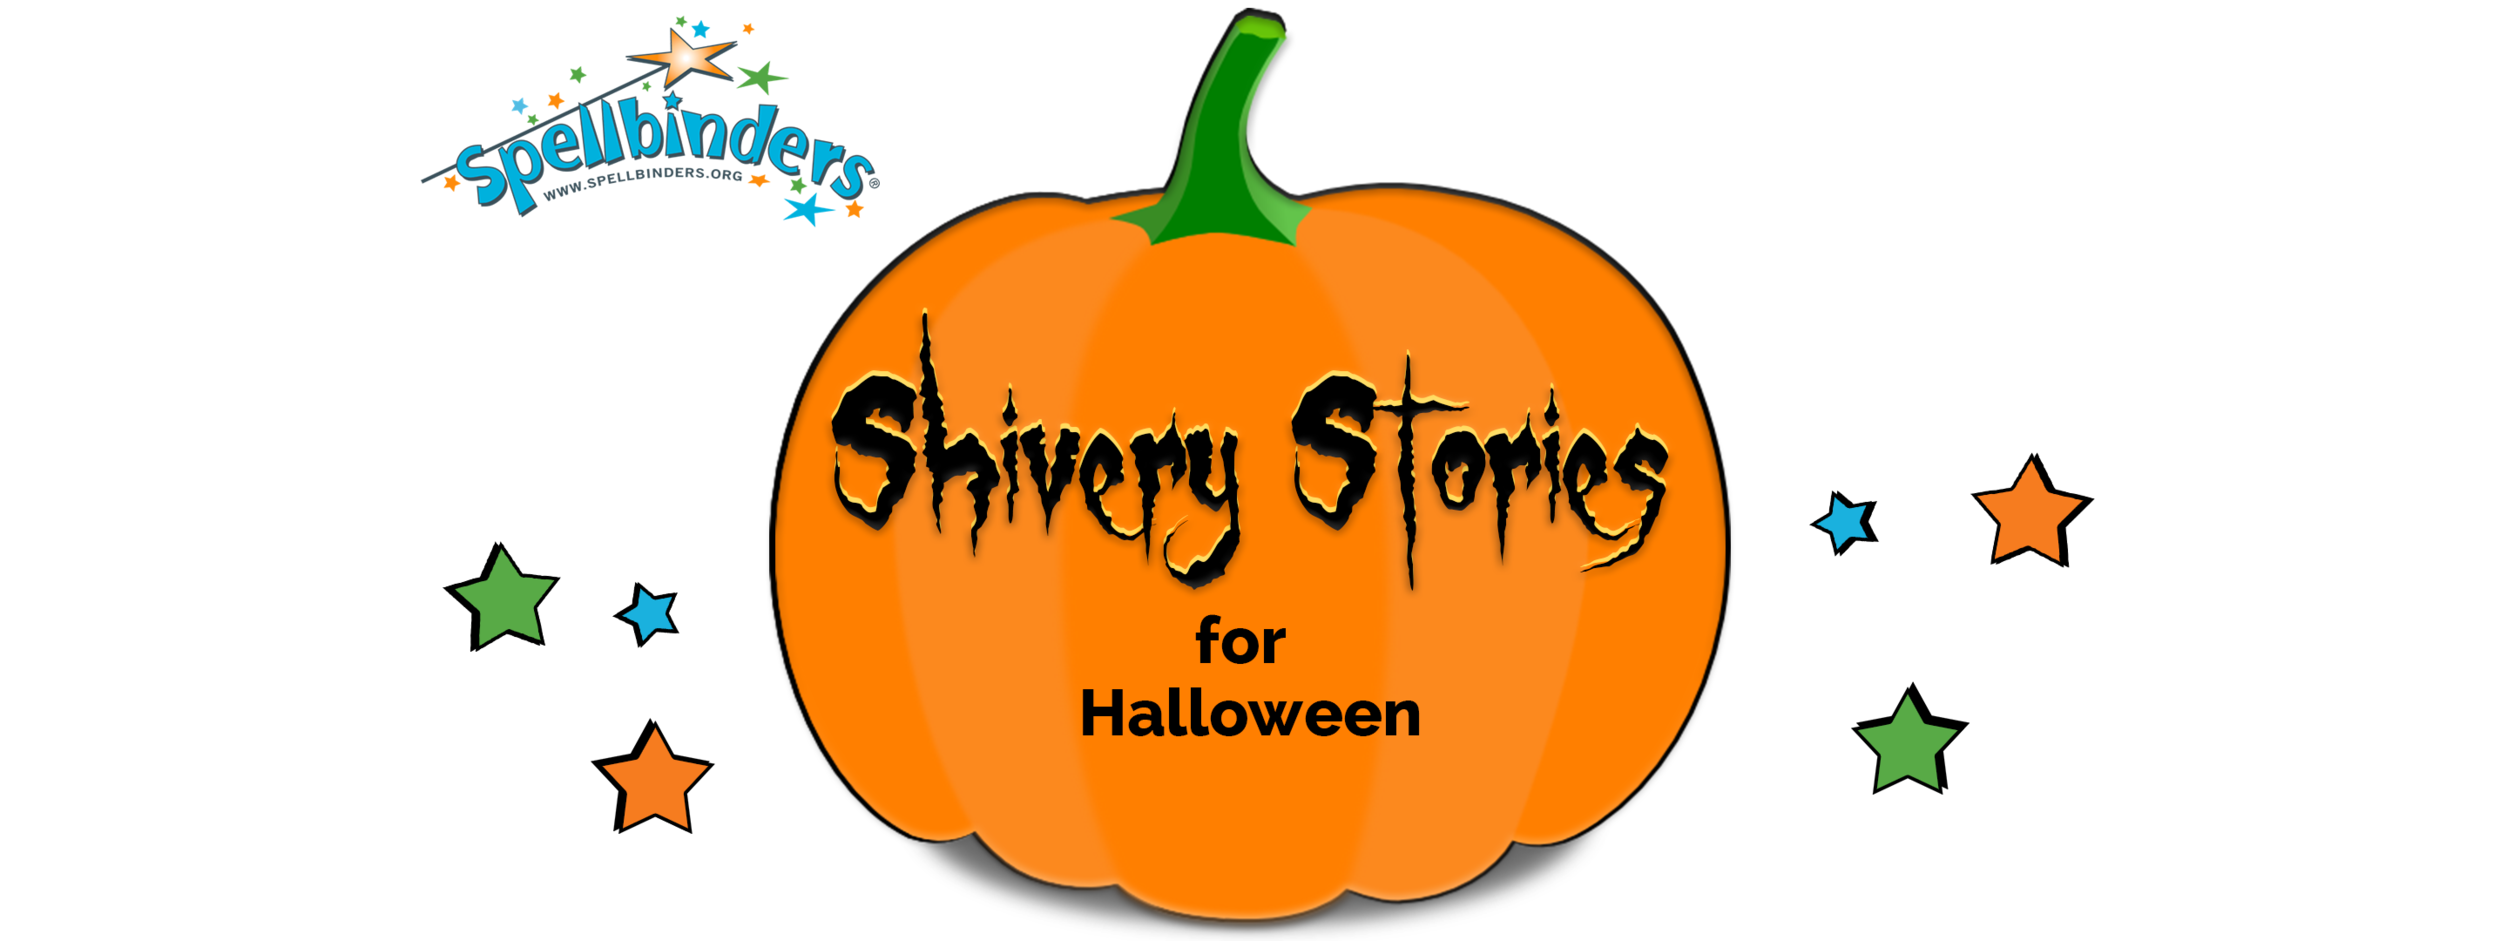 [SB] Shivery Stories Event Cover.png